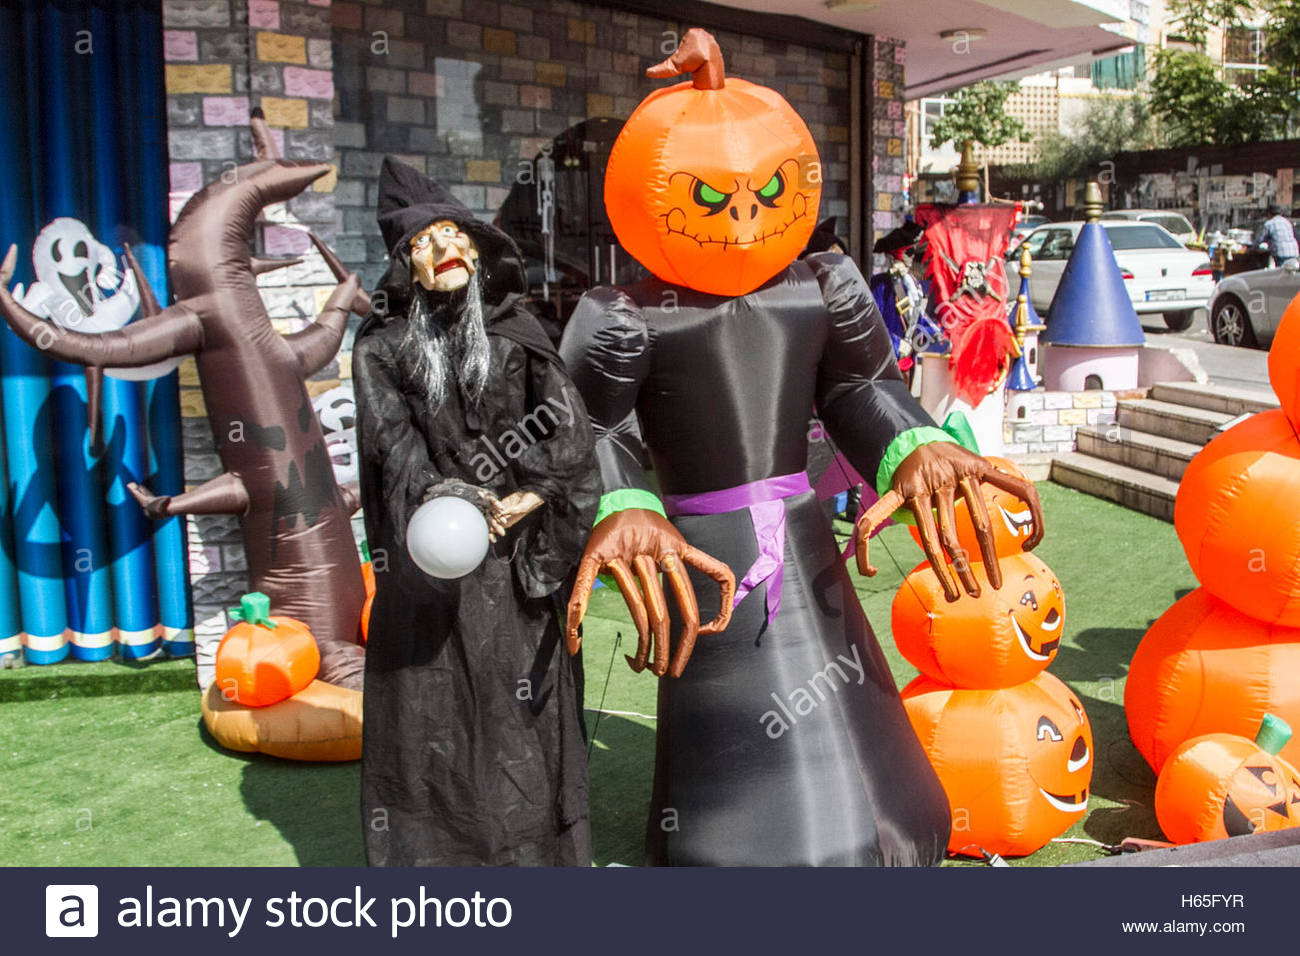 a shop selling halloween costumes and decorations including masks of pirates and pumpkins as beirut gets into the halloween spirit credit amer